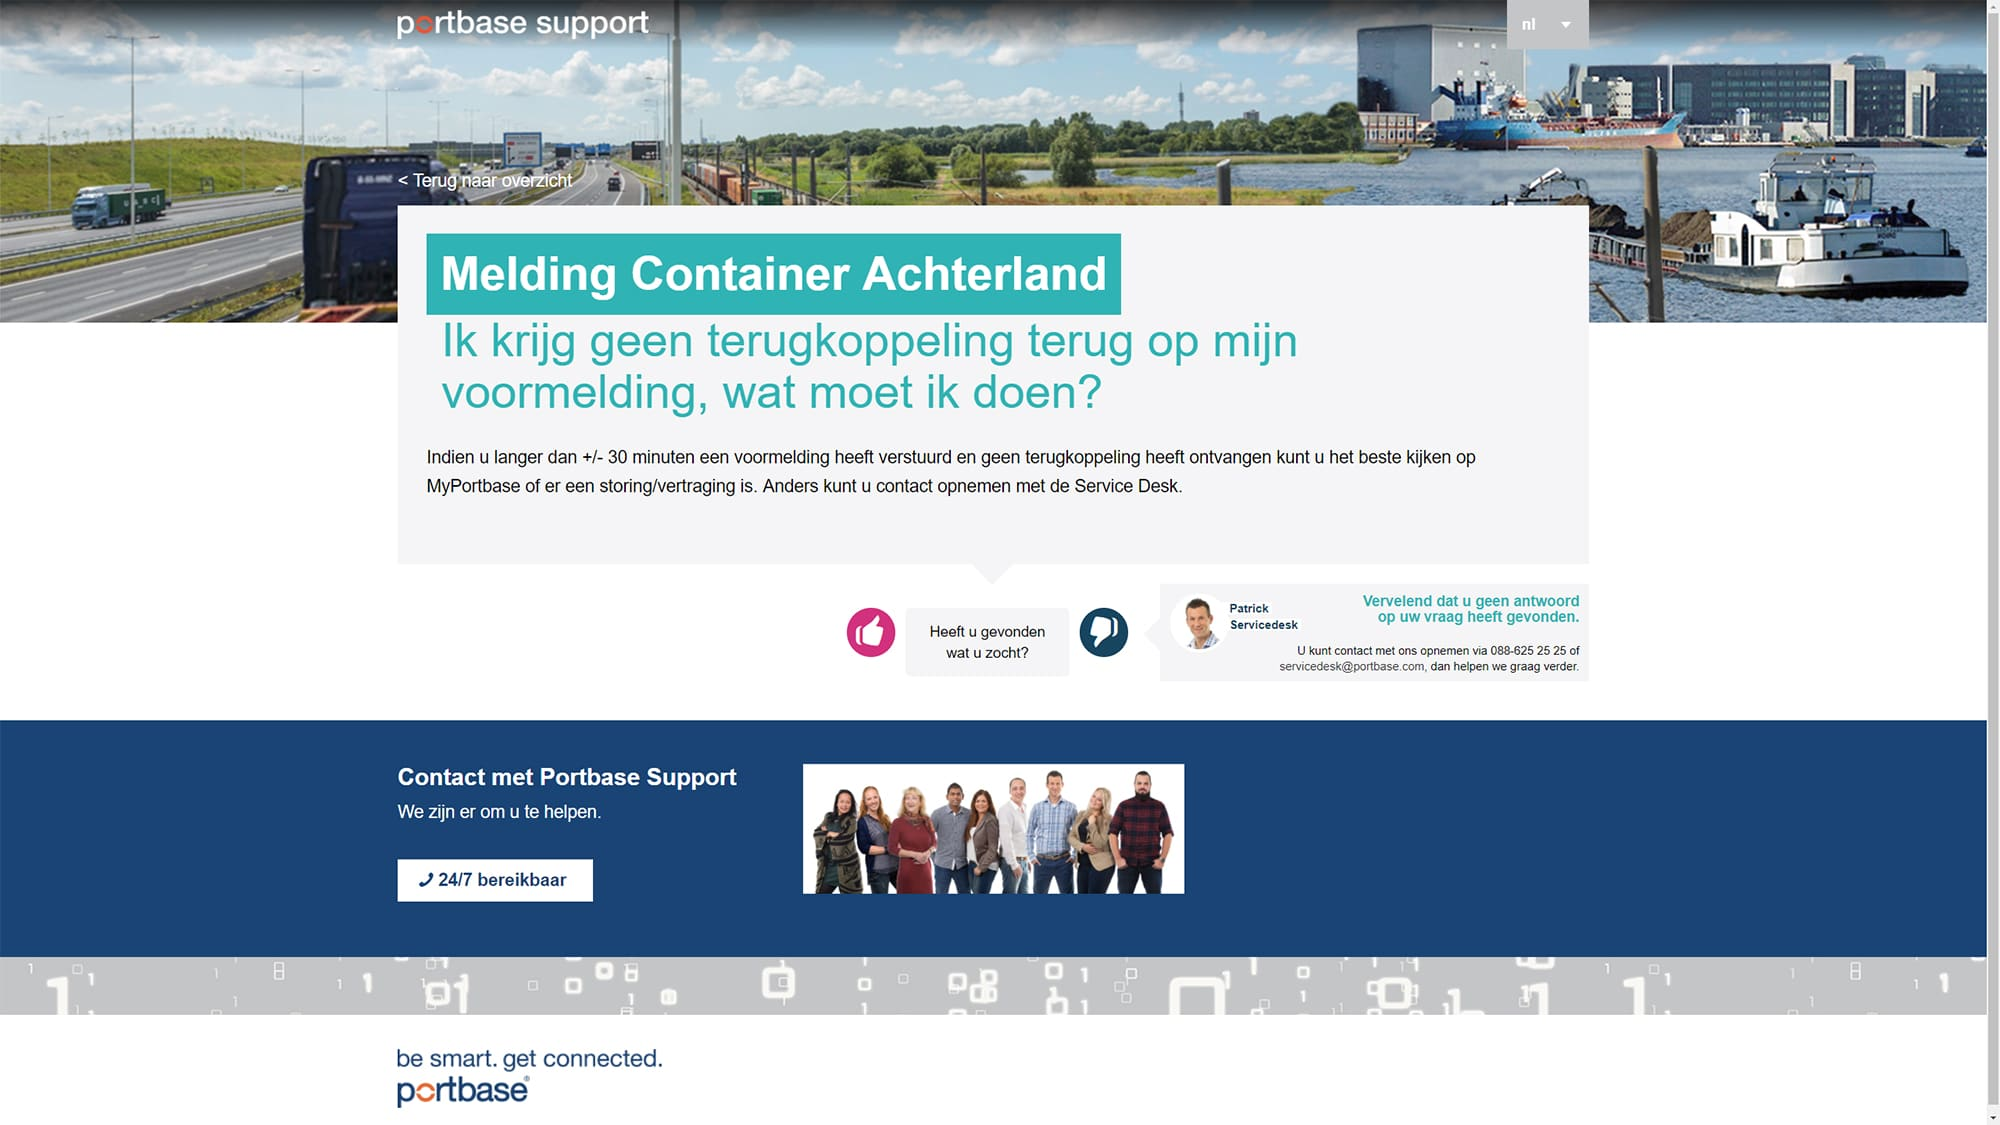 Screenshot van de website van Portbase ontworpen door NOBLY Authentieke Communicatie & Creatie